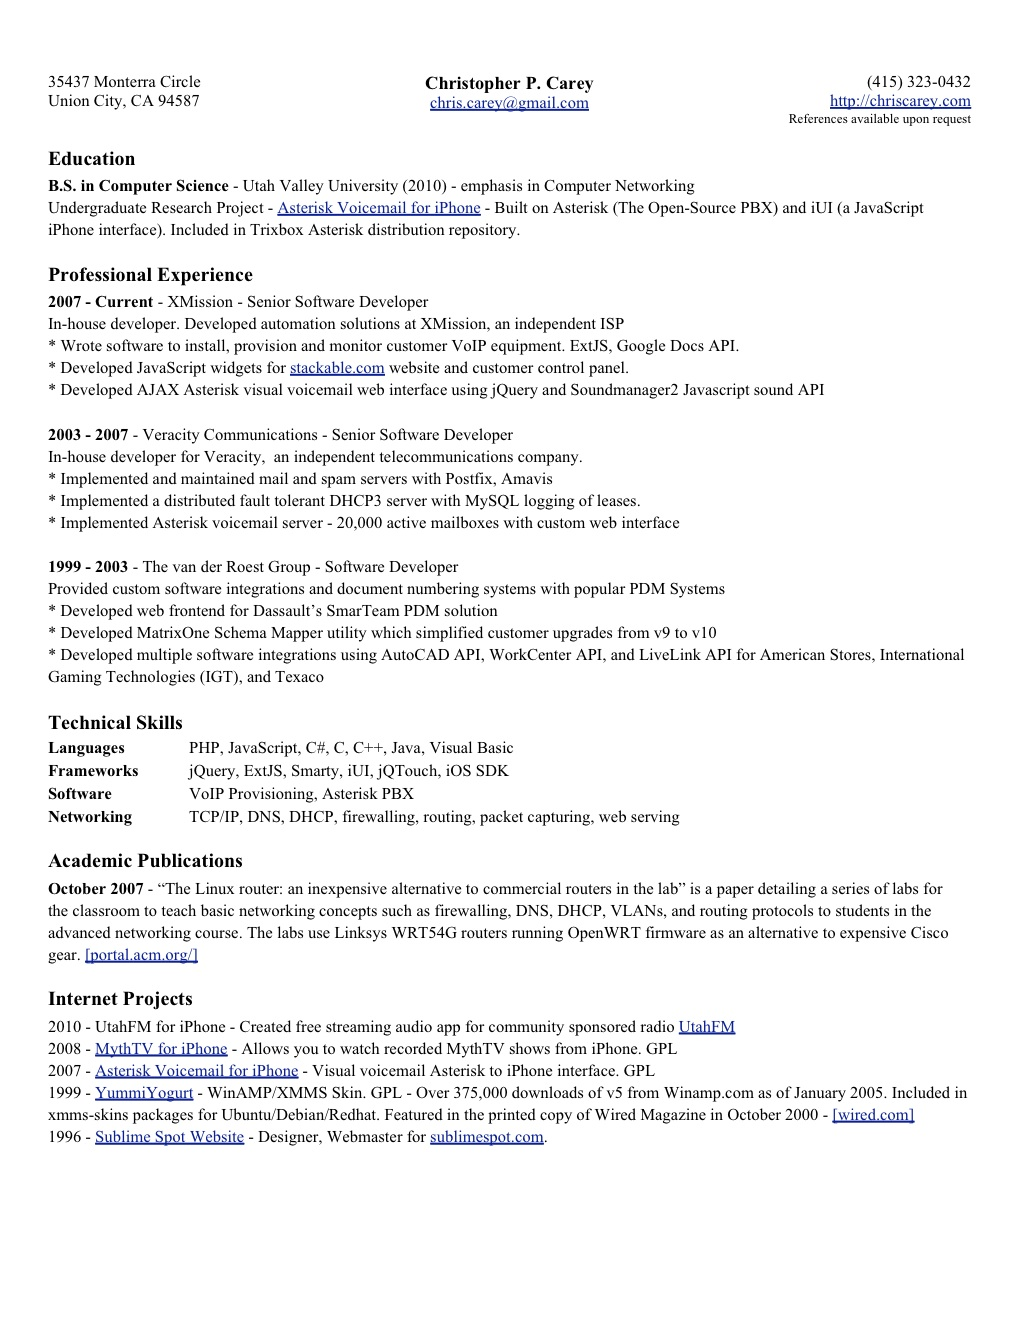 cv template copy and paste coverletter for job education cv template copy and paste cv templates jobfox uk of resume cover letter copy and paste